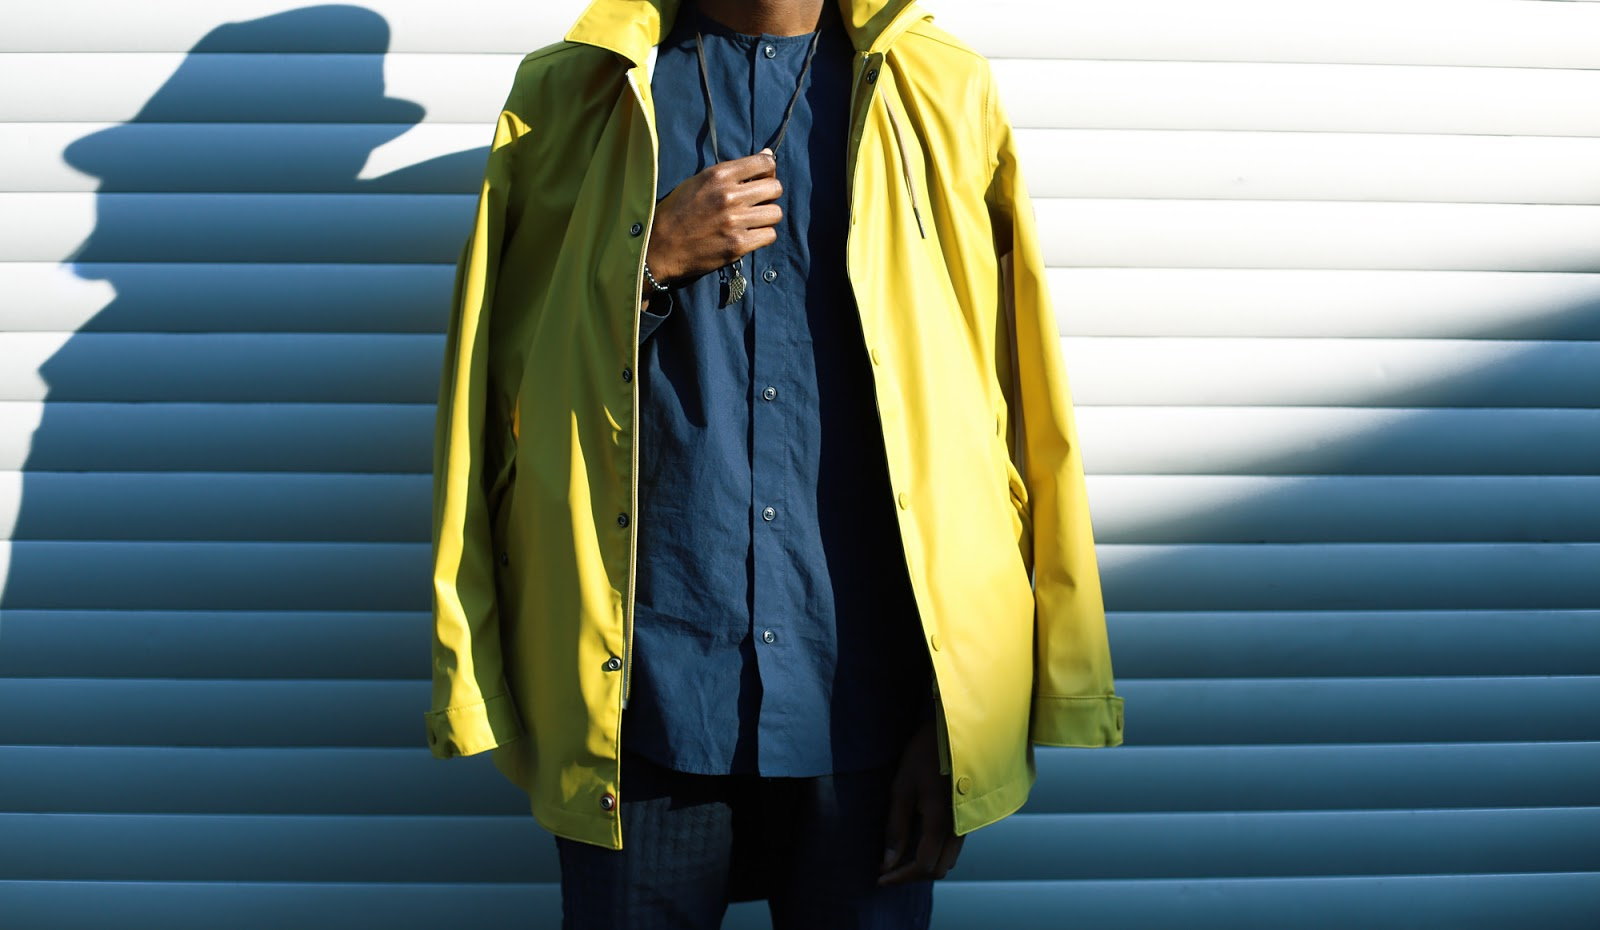 All Blue Casual Urban Look with a lemon Strellson raincoat - Photography by Sofia Dossantos  in Antwerp